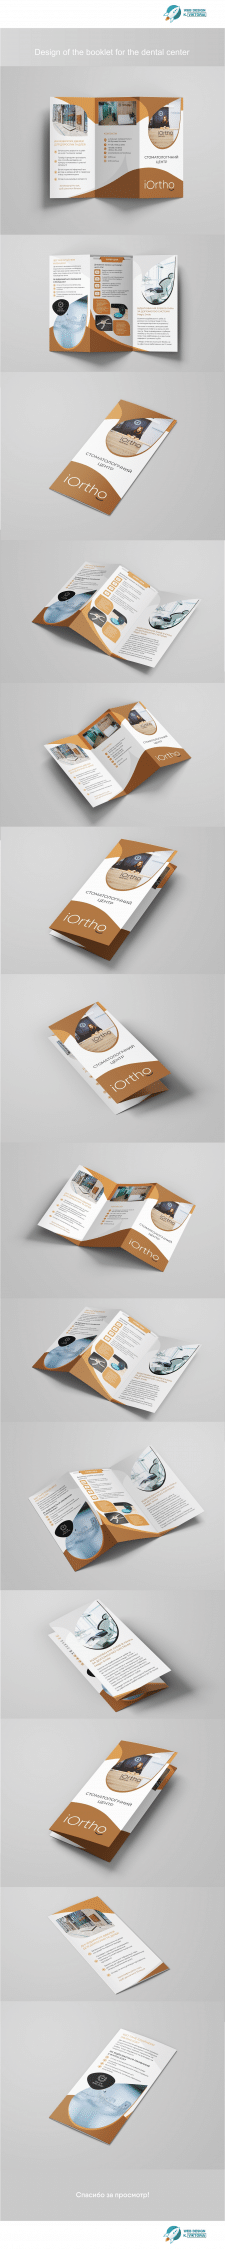 #Design# of the #booklet# for the #dental #center#